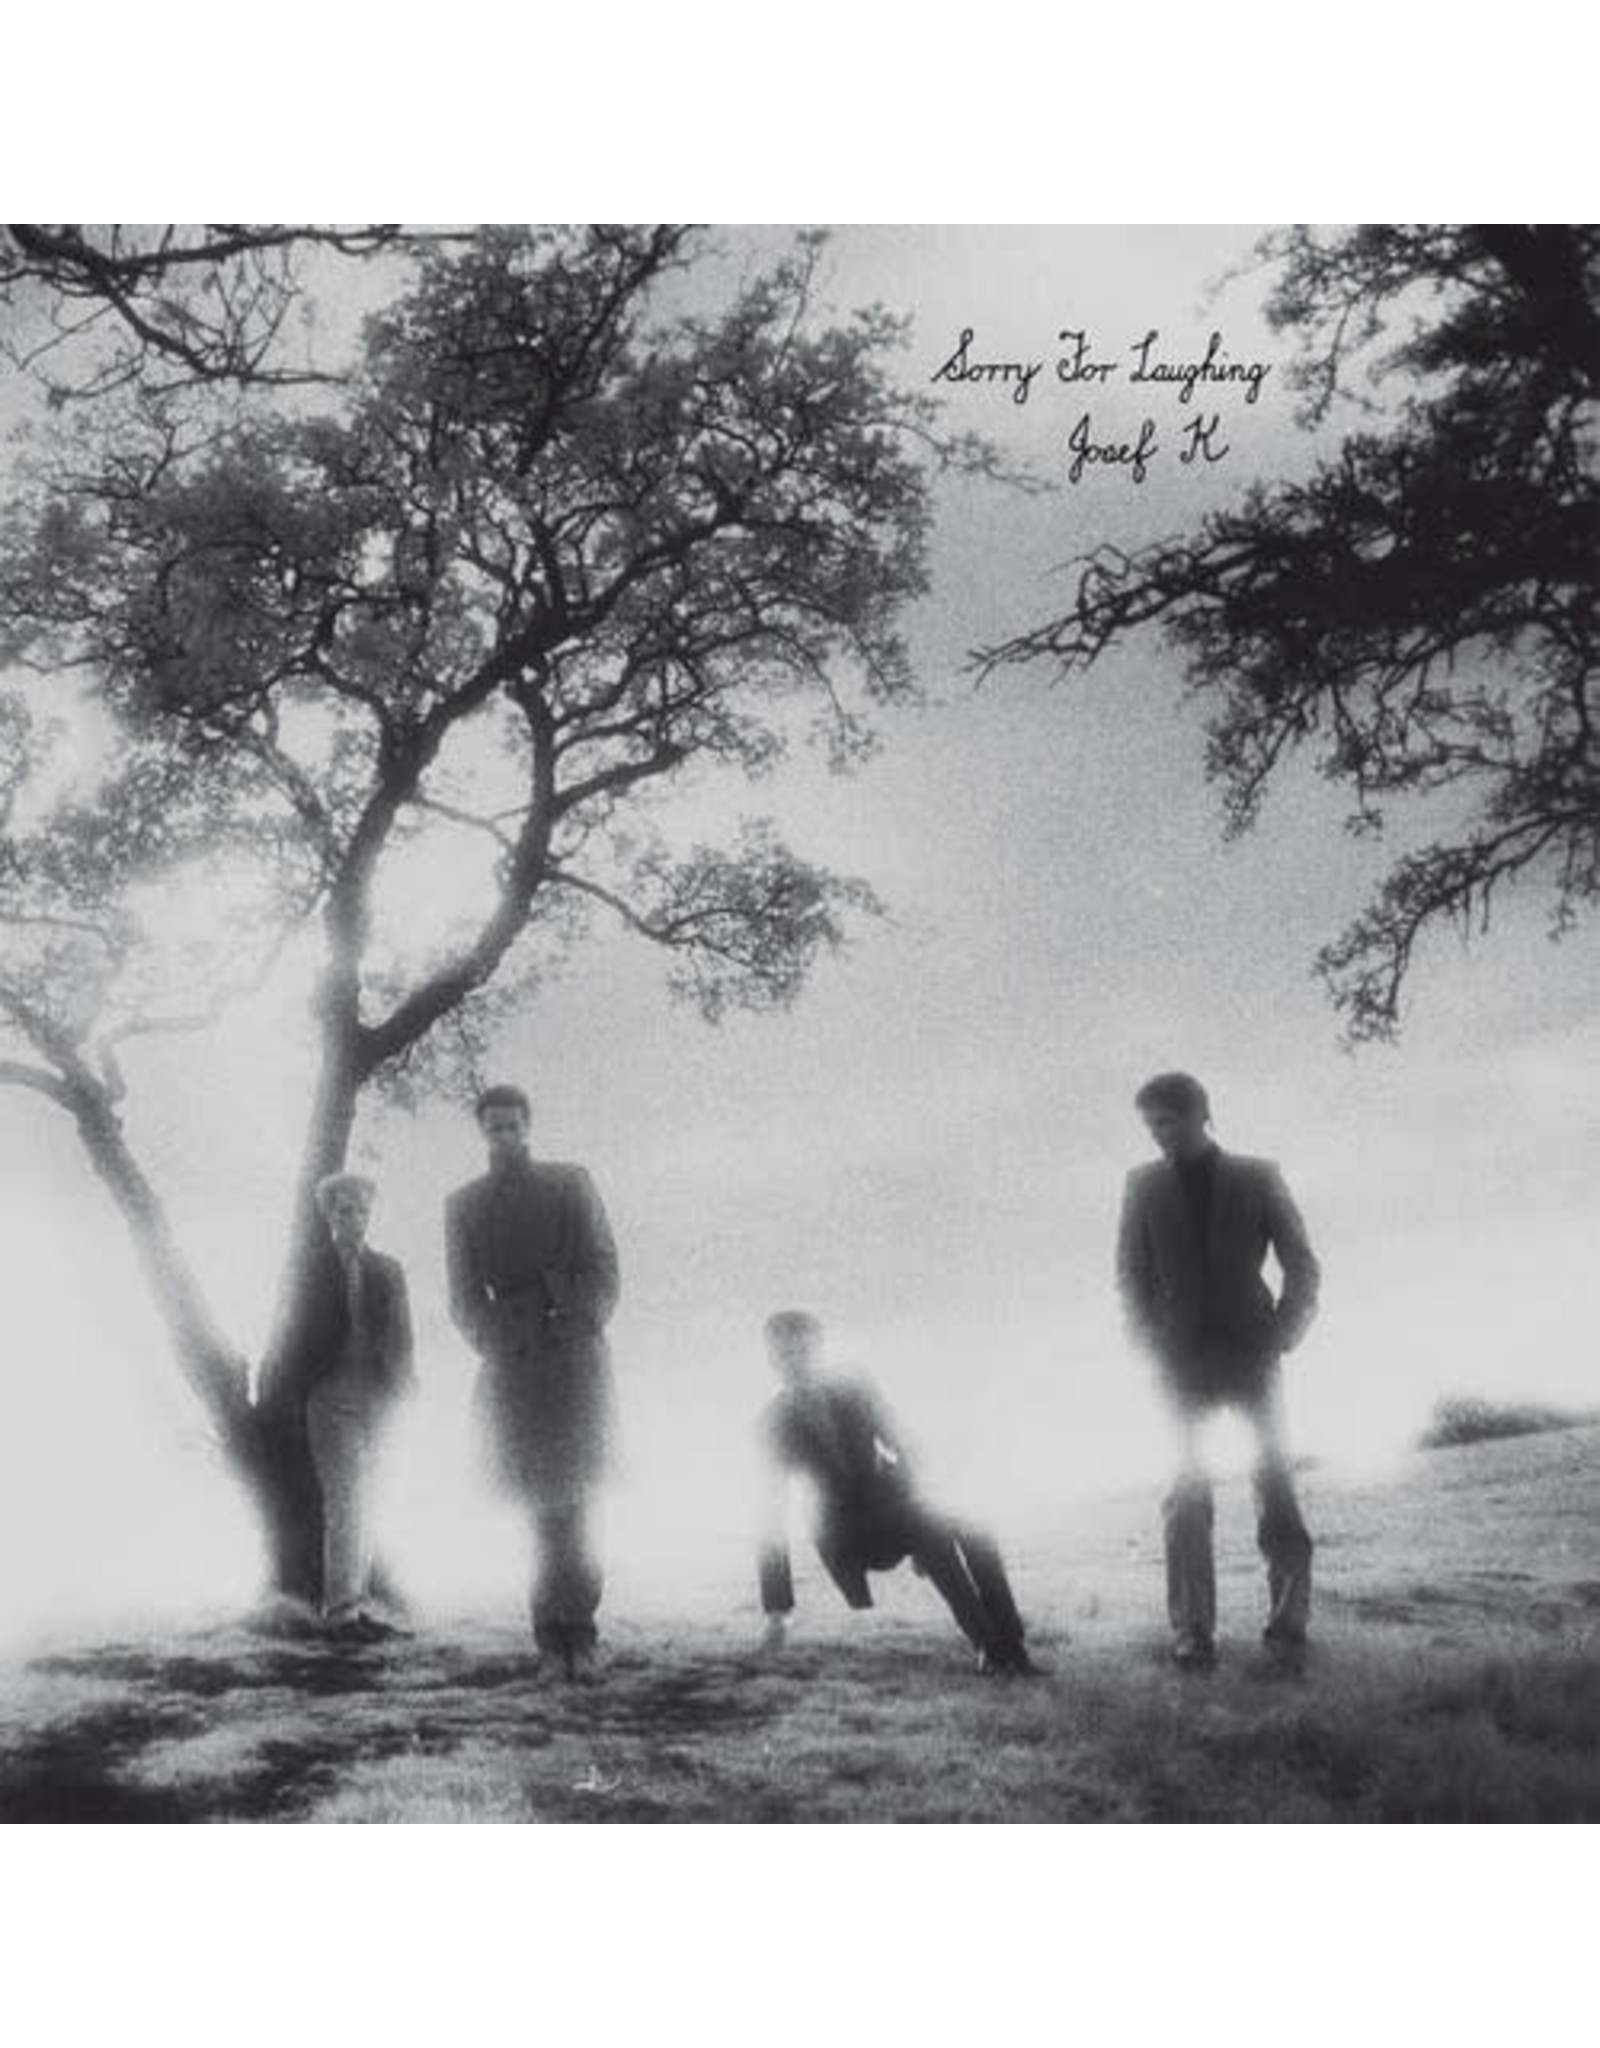 New Vinyl Josef K - Sorry for Laughing (Clear) LP+CD